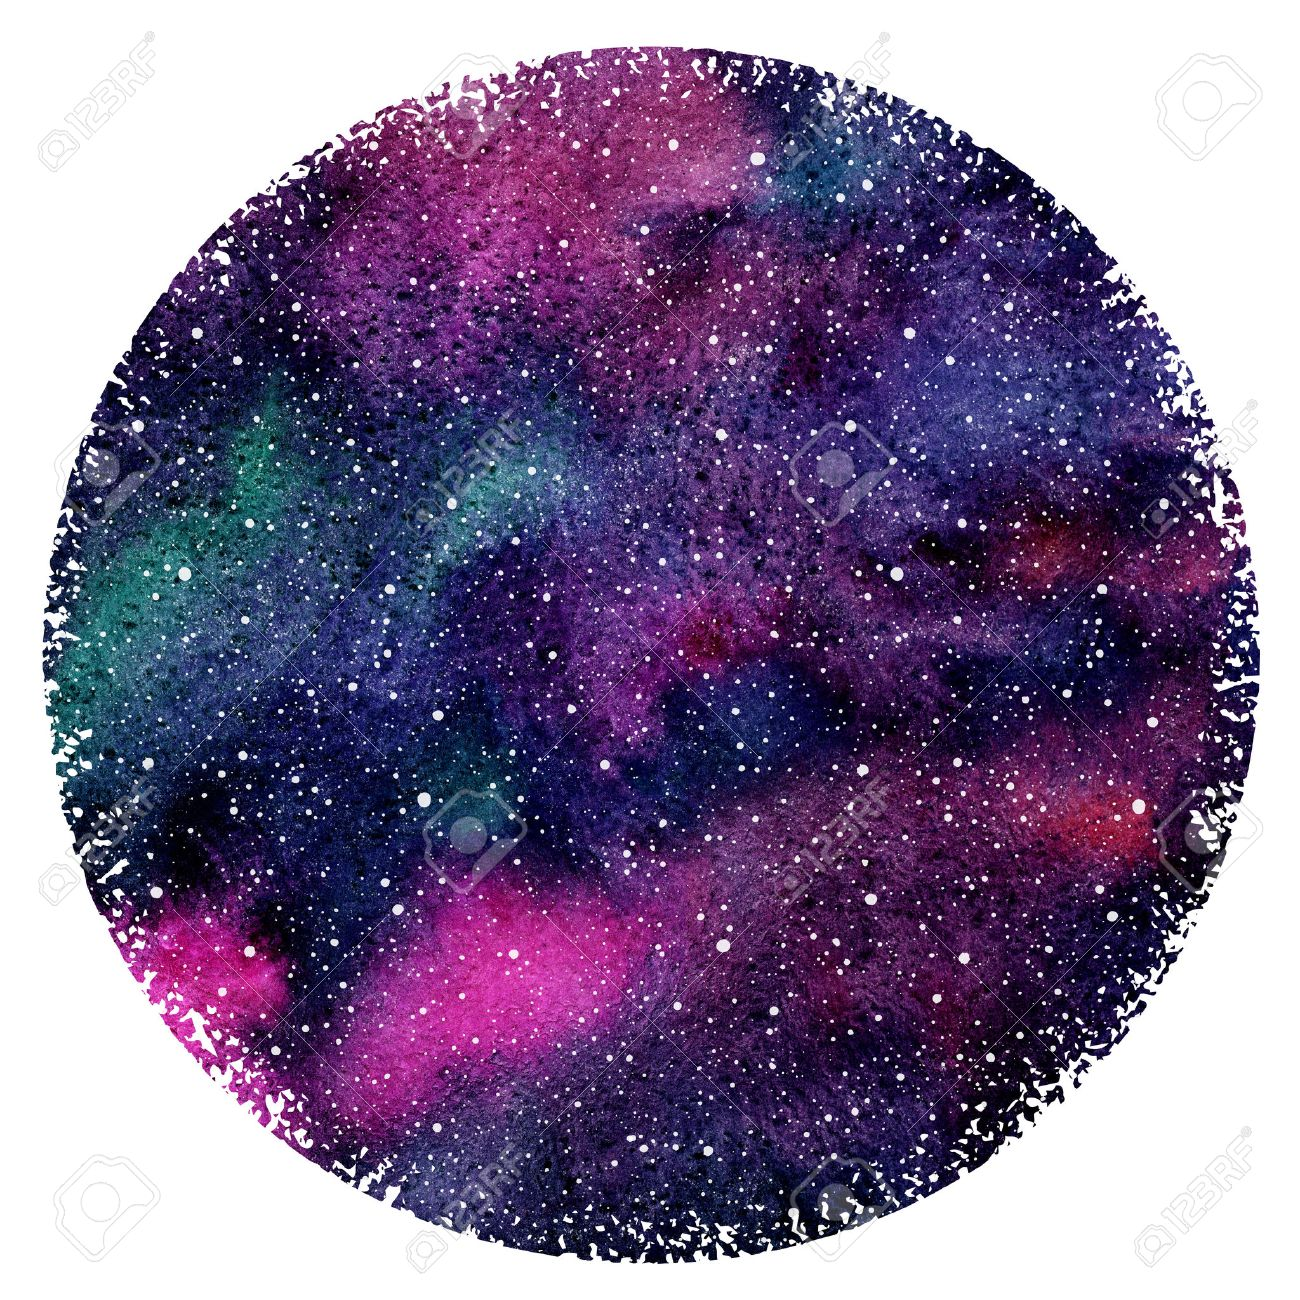 watercolor night sky or galaxy with colorful stains and stars